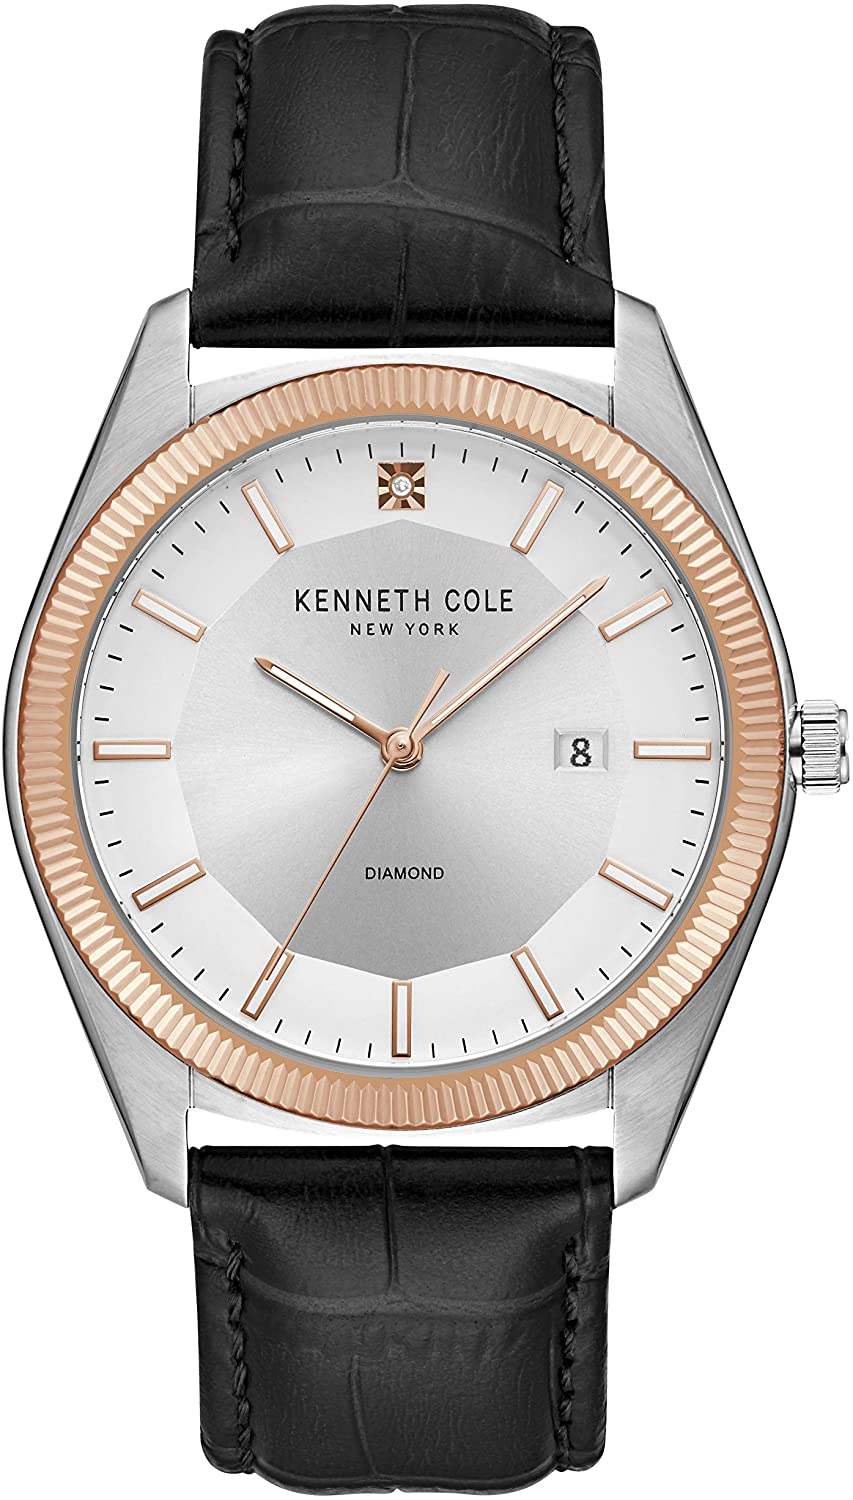 Kenneth Cole New York Classic Diamond Dial Men's Watch